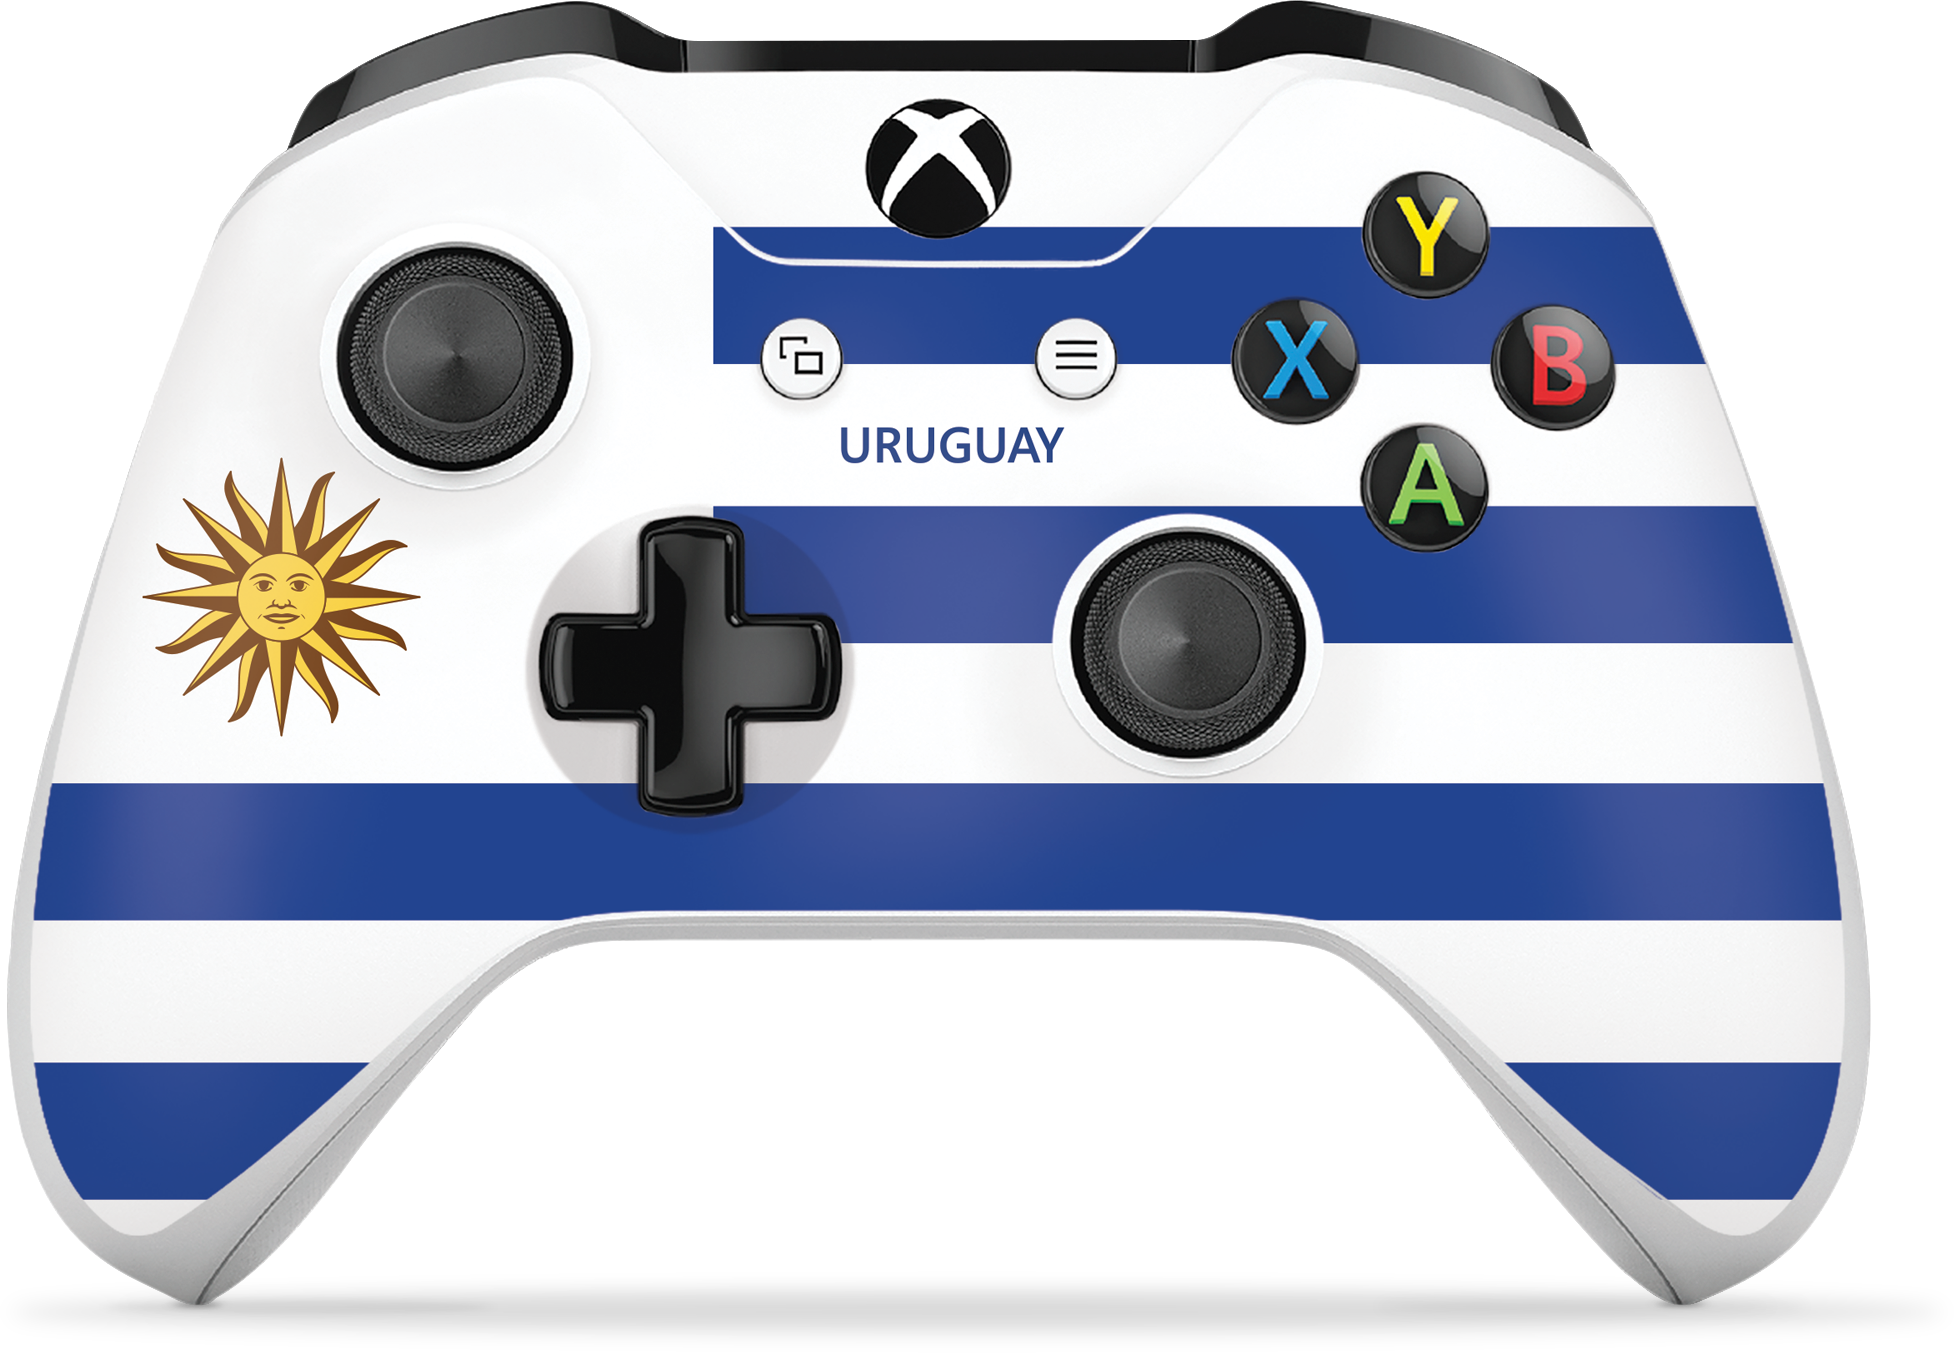 RE1ZiFV?ver=bf31 - Controller Gear World's Game Controller Skins (Uruguay)